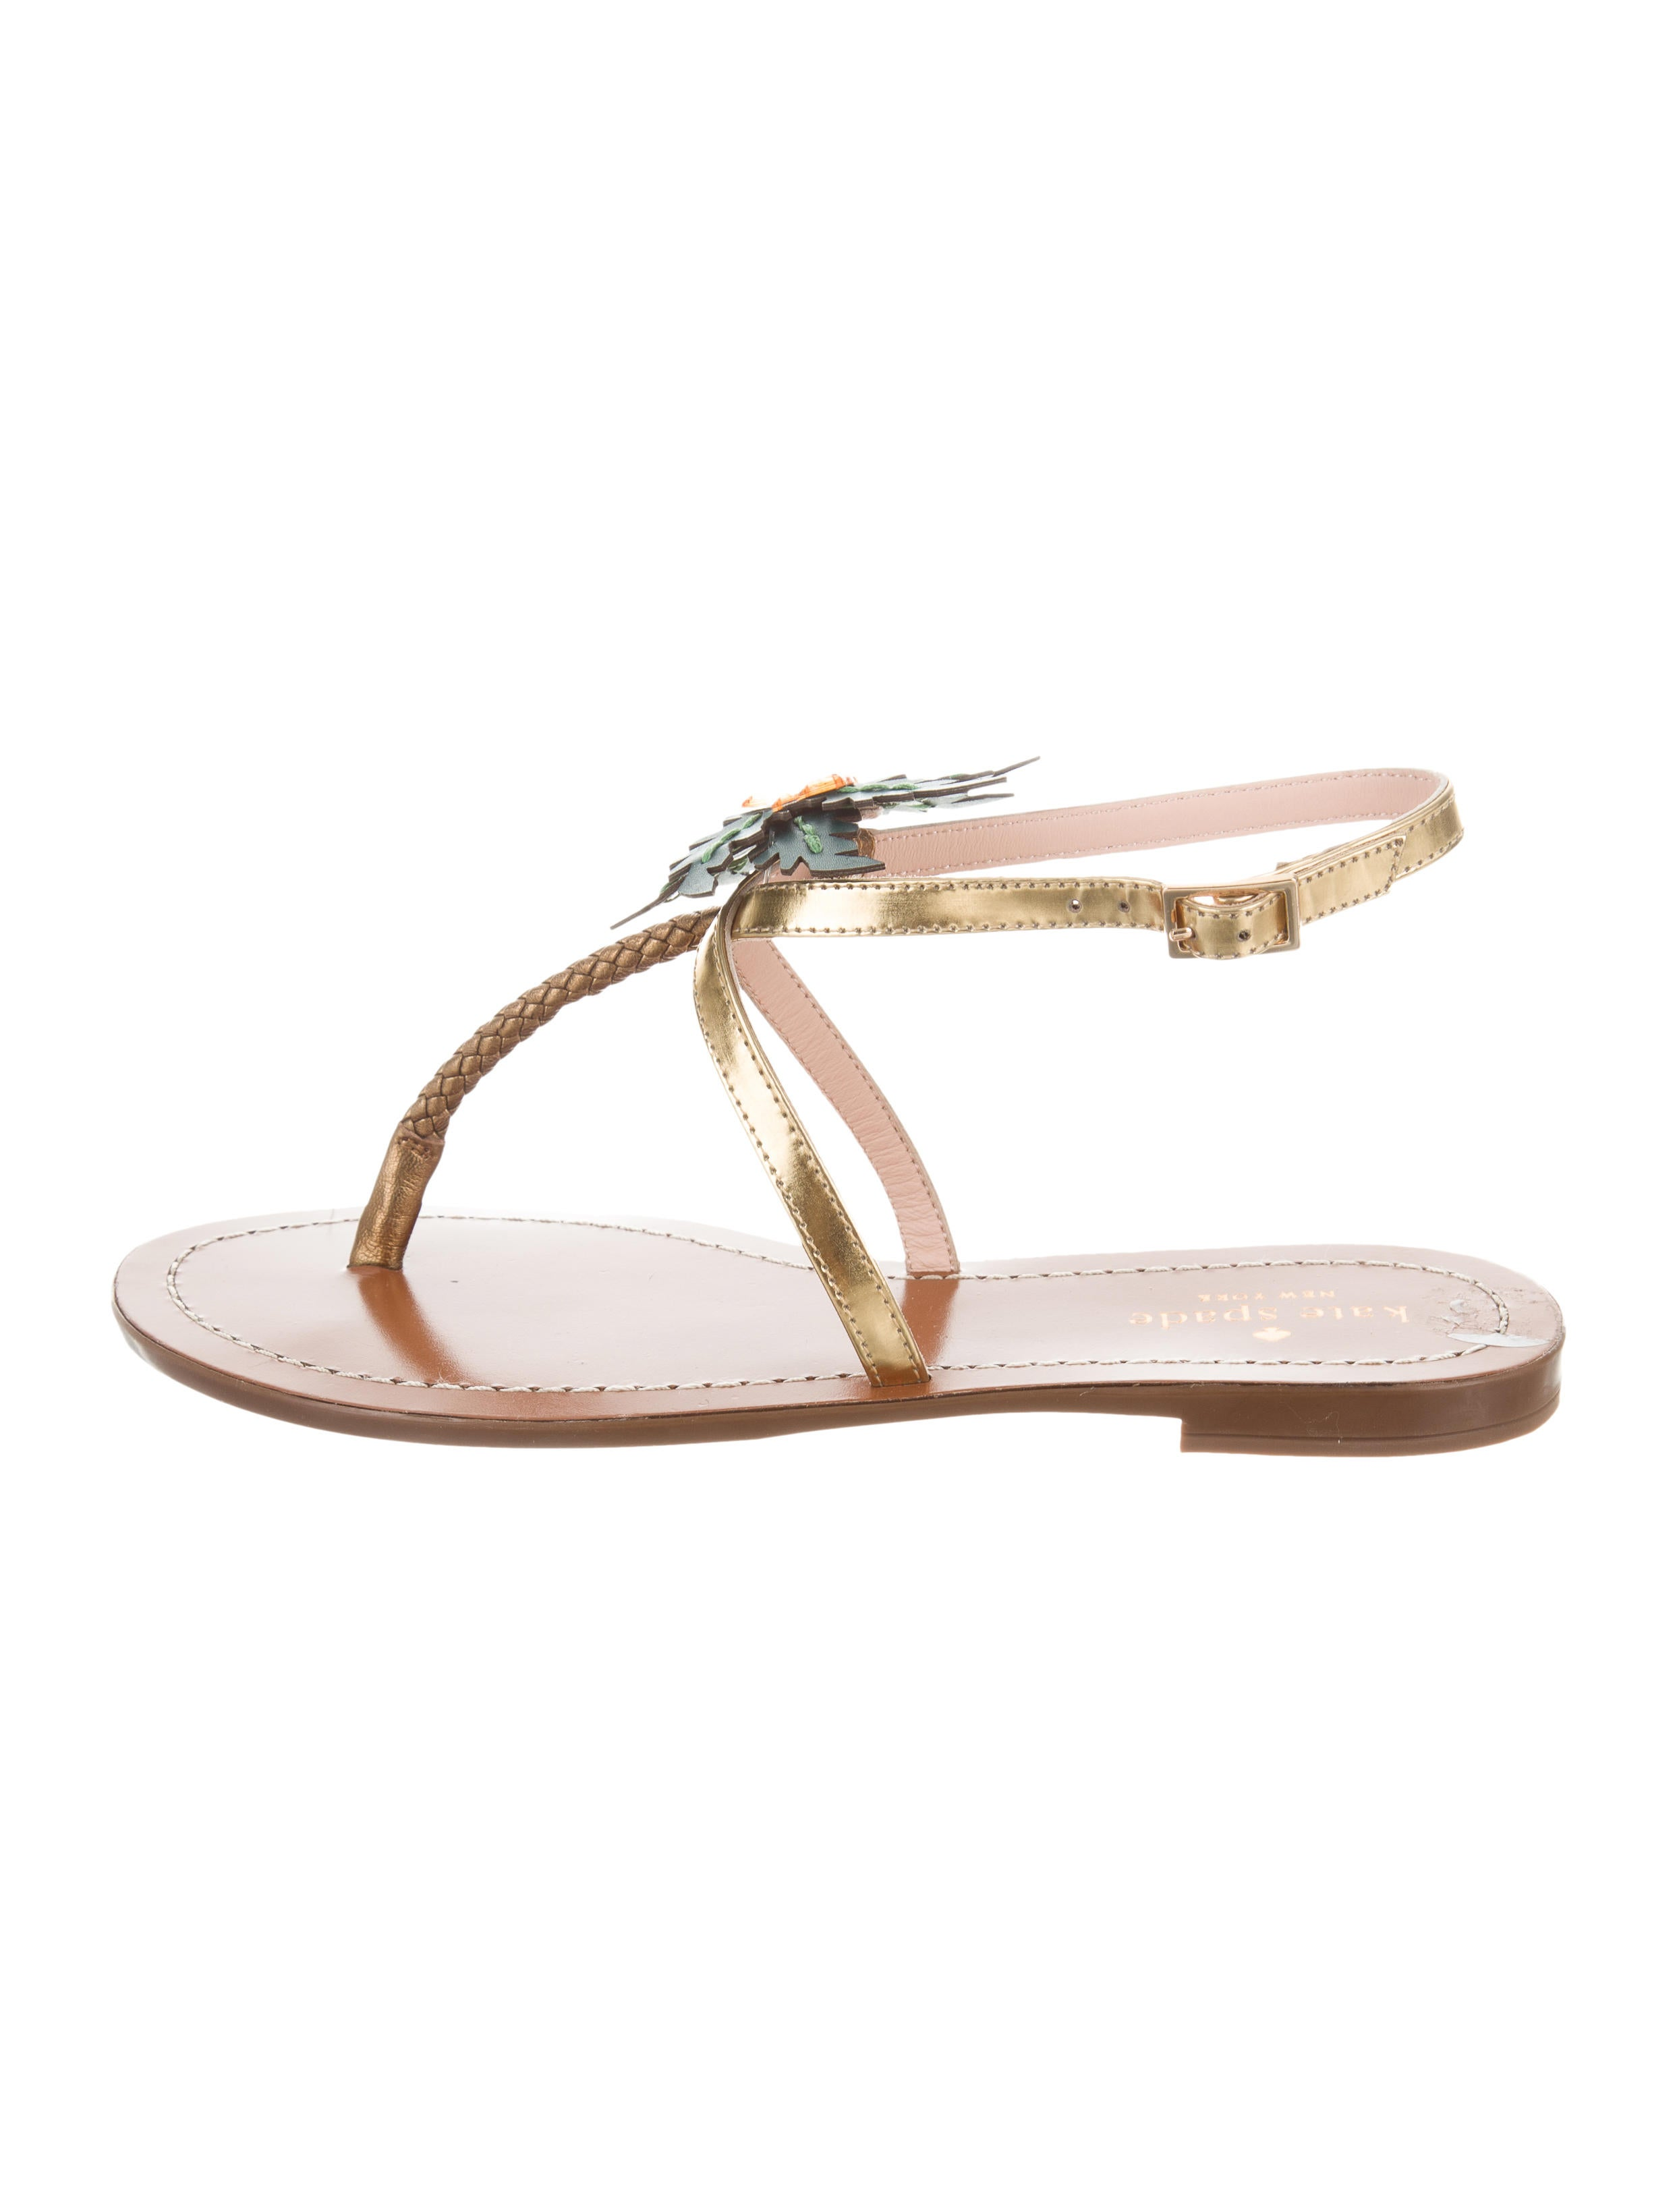 365bf7df11a3 Kate Spade New York Solana Palm Tree Sandals - Shoes - WKA66198 ...